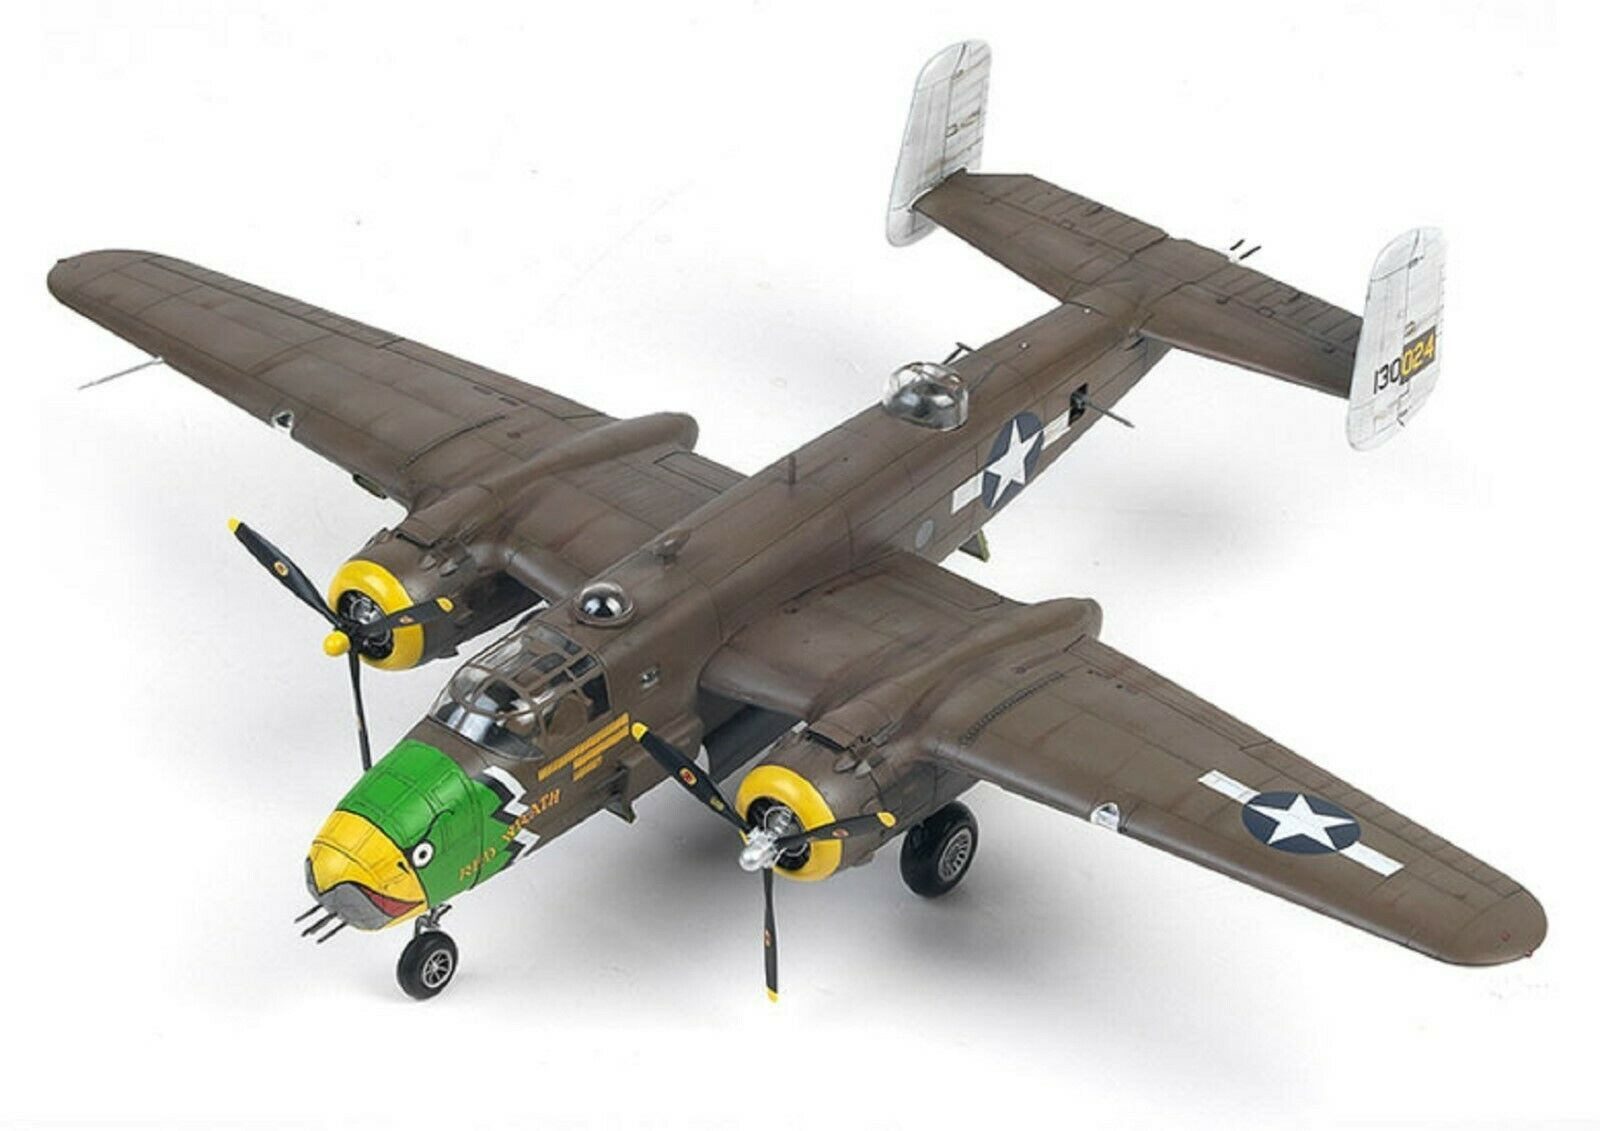 Academy 12328 1:48 USAAF B-25D Pacific Theatre Plastic Hobby Model Airplane Kit